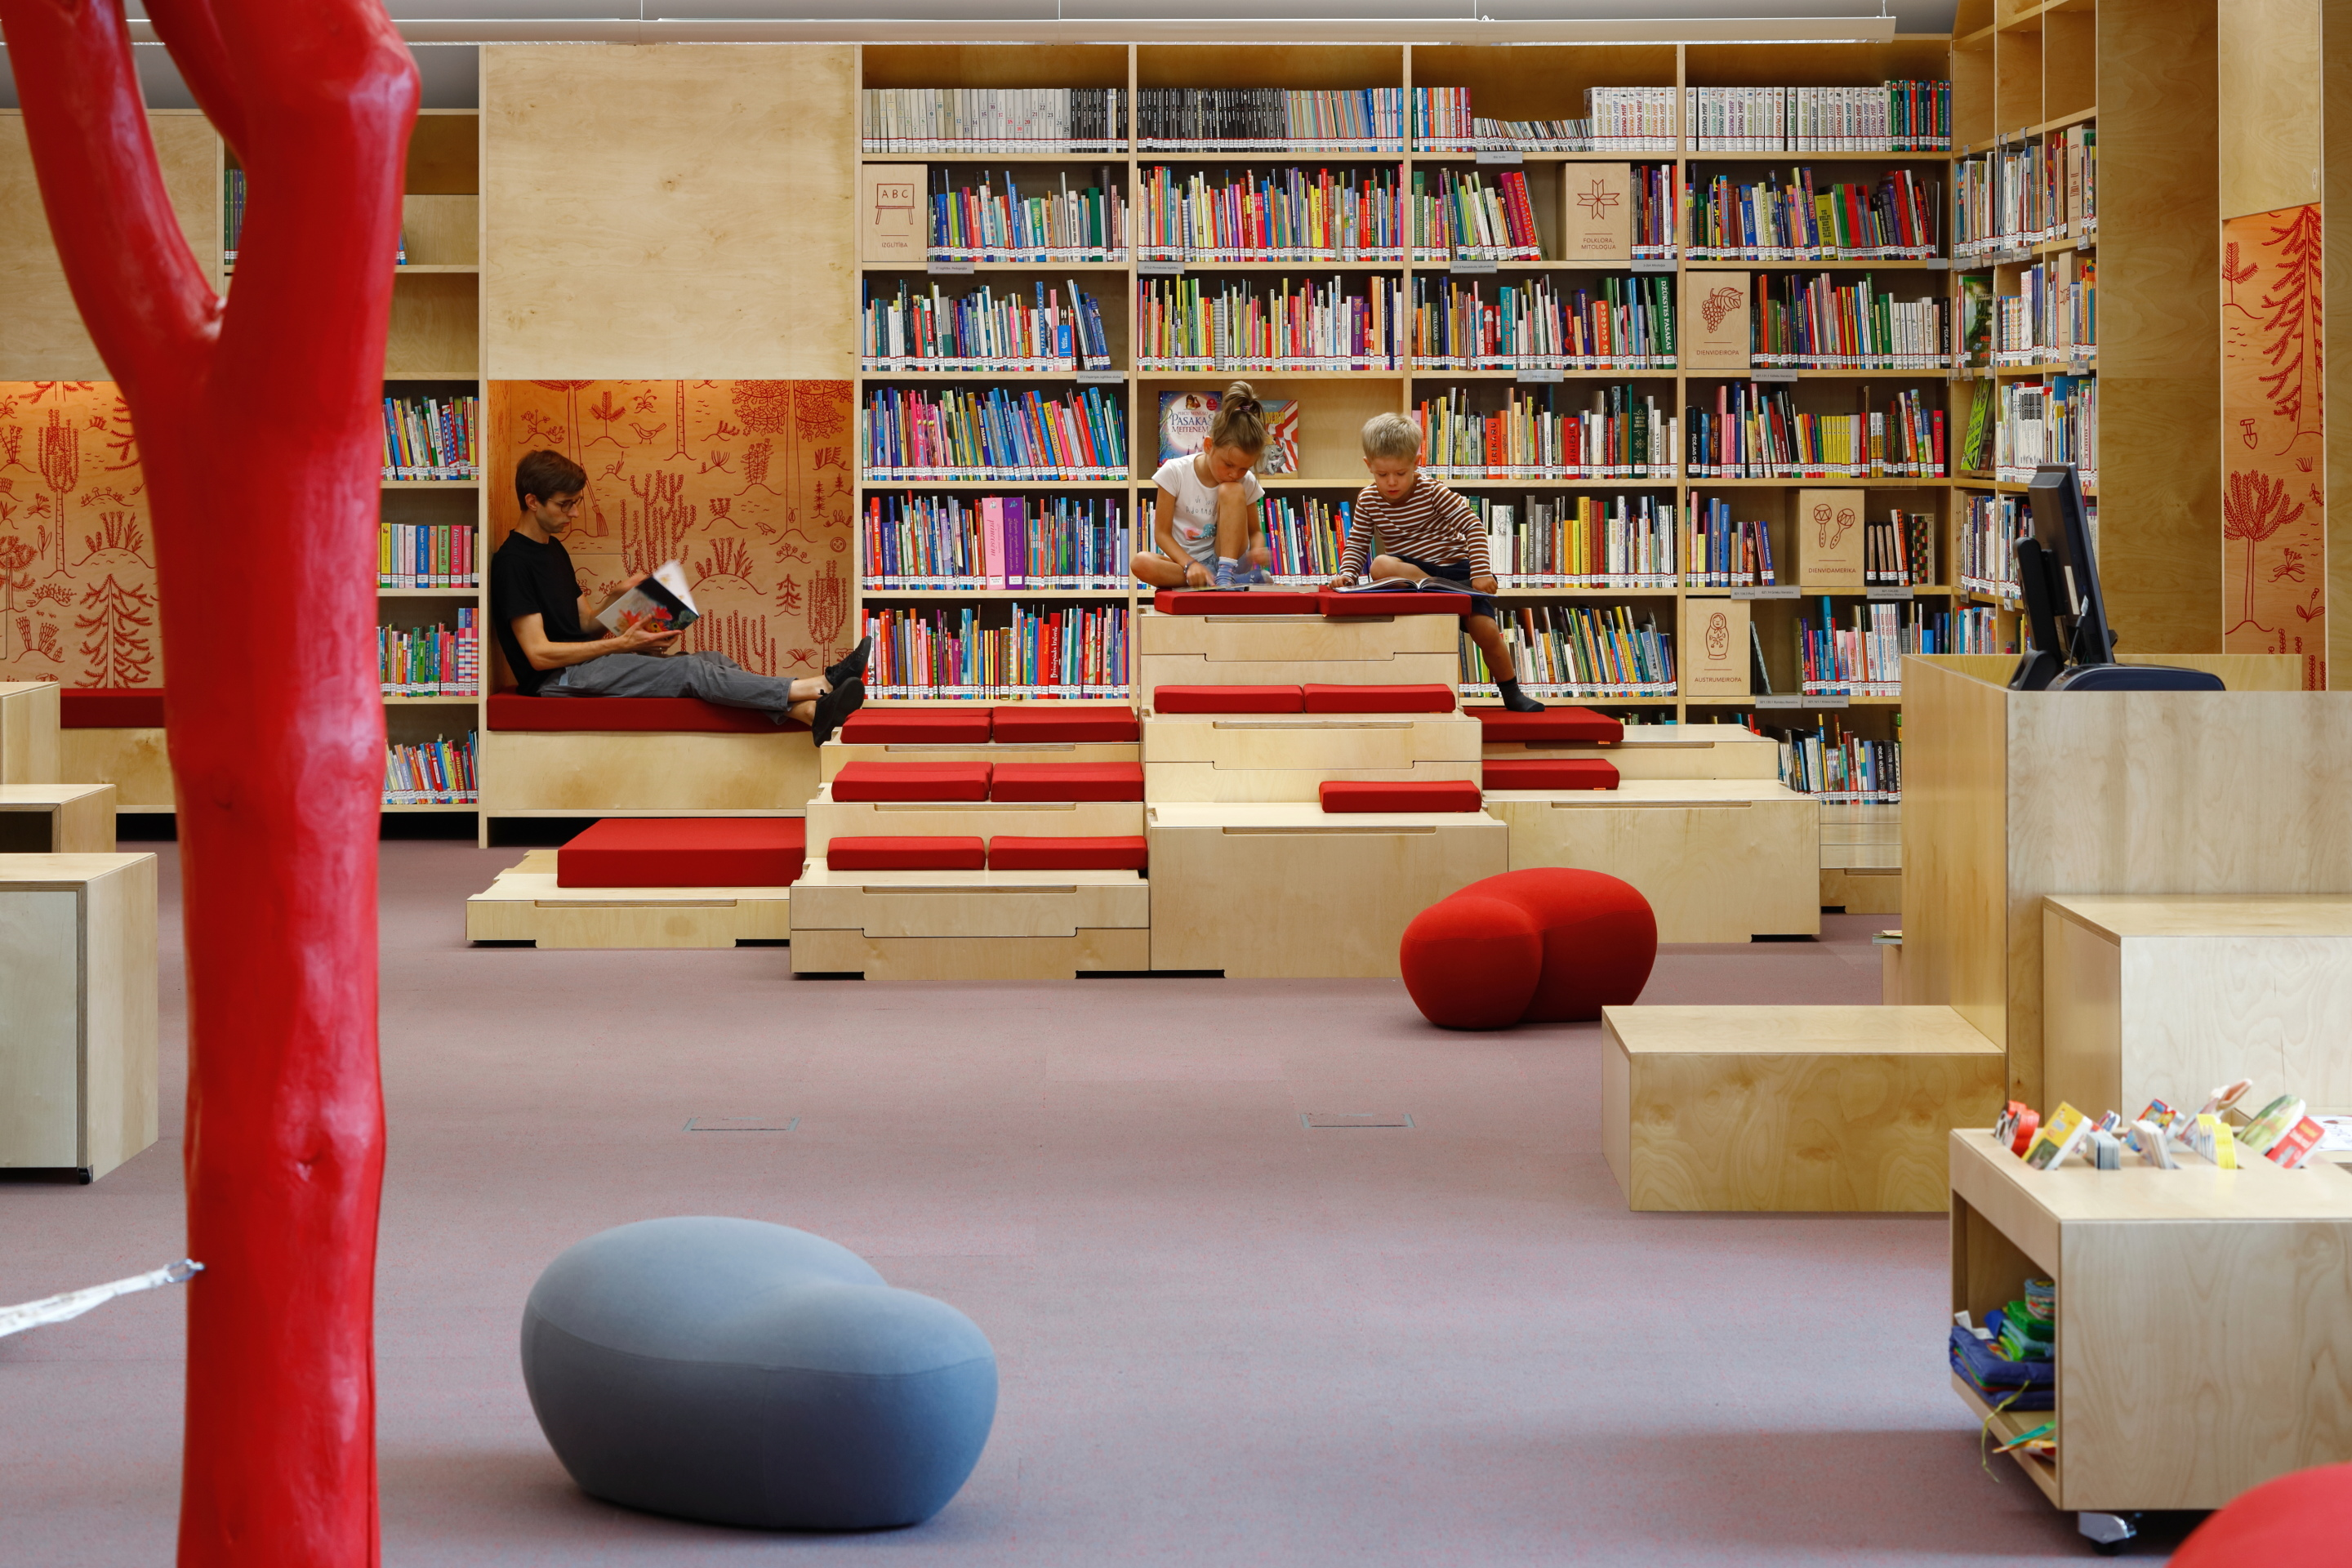 gaiss-041-nll-childrens-library-02-photo-ansis-starks